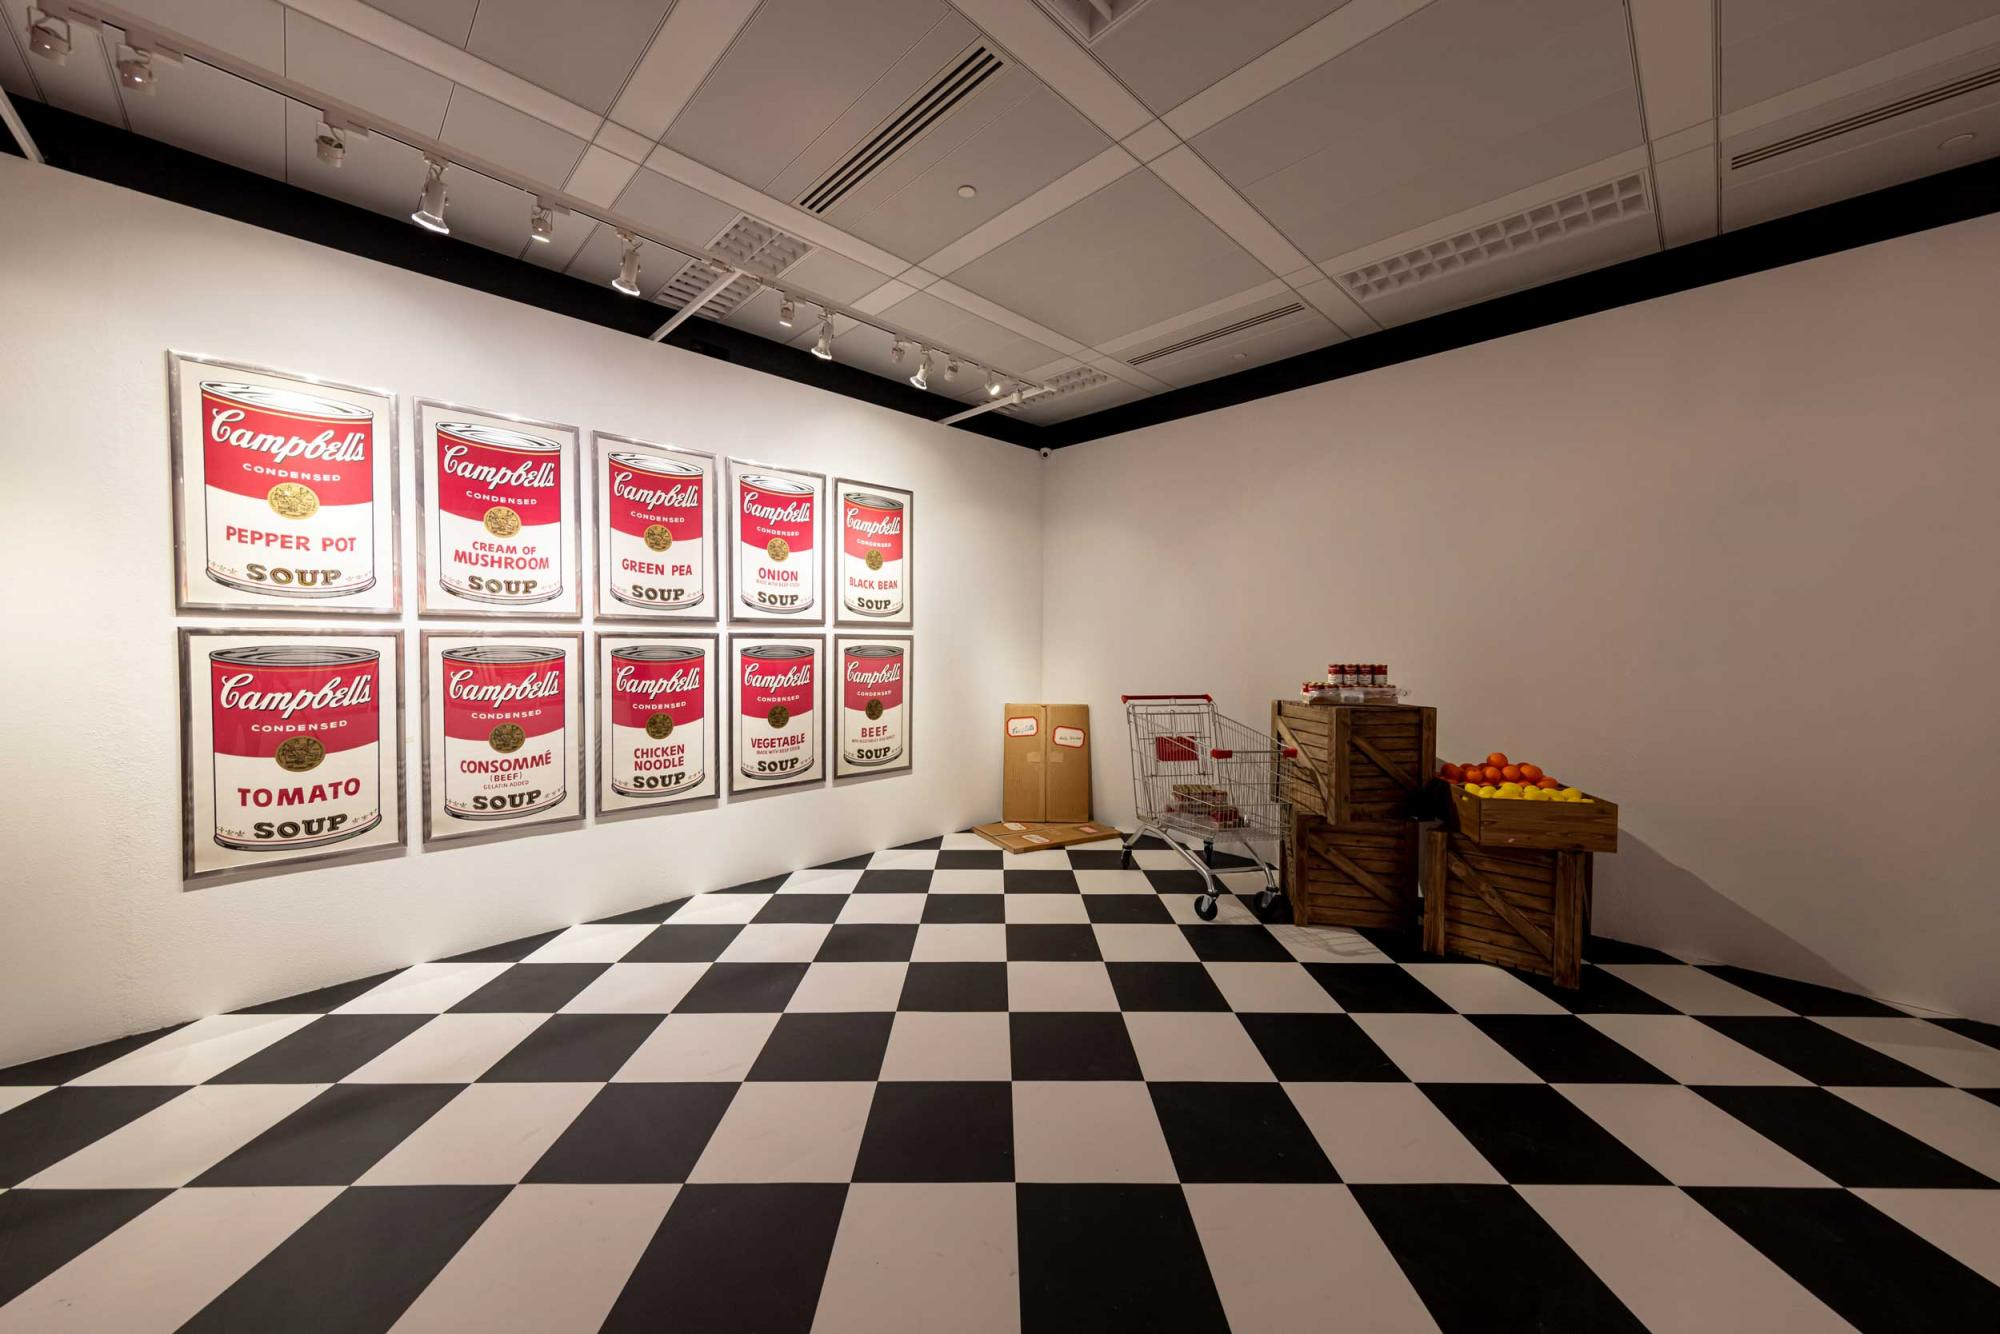 Andy-Warhol's--Campbell's-SoupSeries,-exhibiting-in-set-simulating-a-grocery-store-(3).jpg